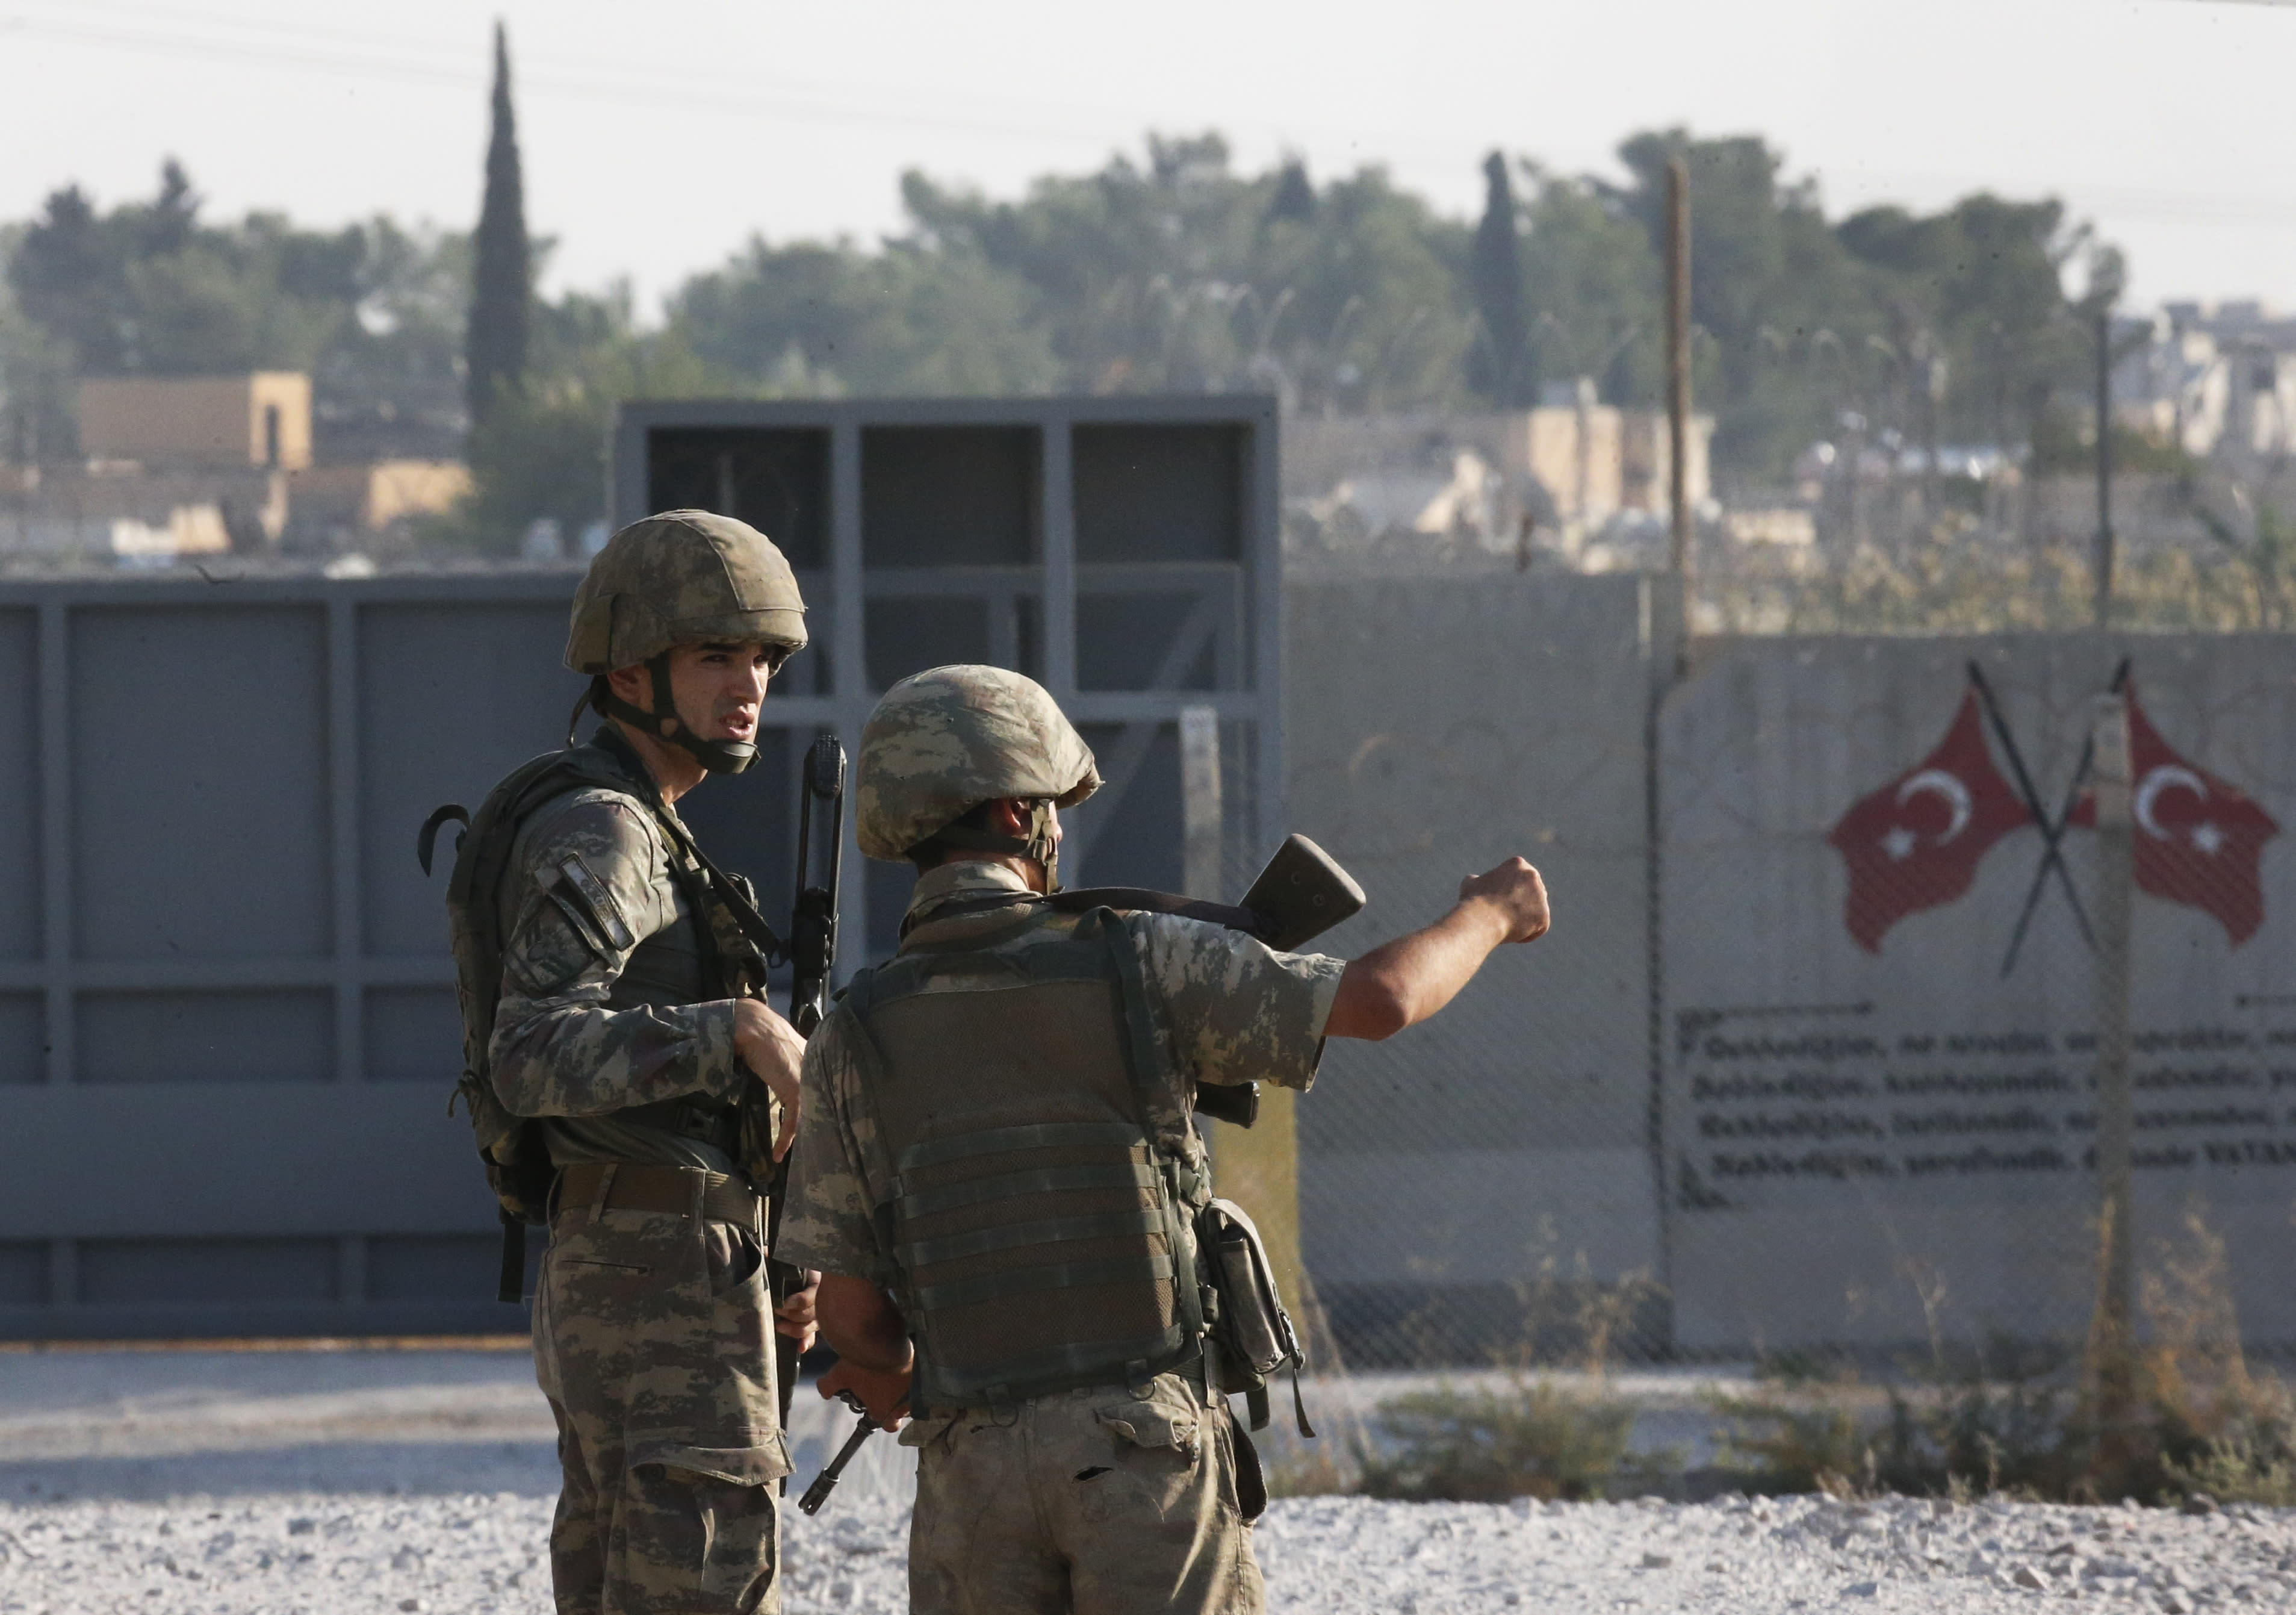 Shortly after the Turkish operation inside Syria had started, Turkish soldier stand at the border with Syria in Akcakale, Sanliurfa province, southeastern Turkey, Wednesday, Oct. 9, 2019. Turkey launched a military operation Wednesday against Kurdish fighters in northeastern Syria after U.S. forces pulled back from the area, with a series of airstrikes hitting a town on Syria's northern border. (AP Photo/Lefteris Pitarakis)